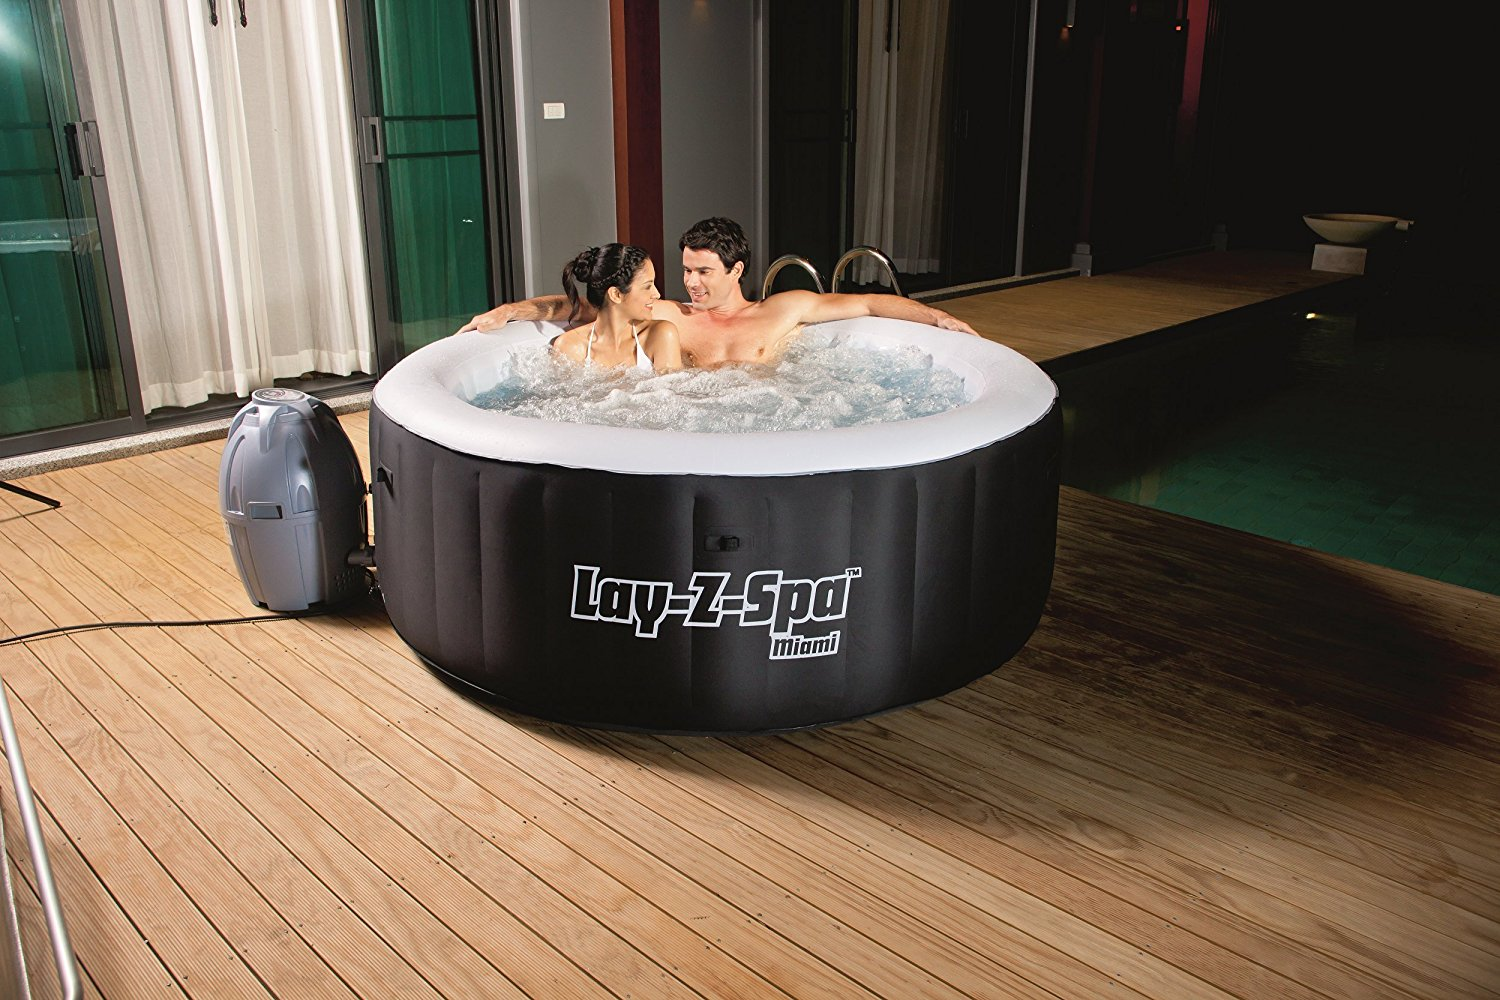 Miami AirJet Inflatable Hot Tub Review